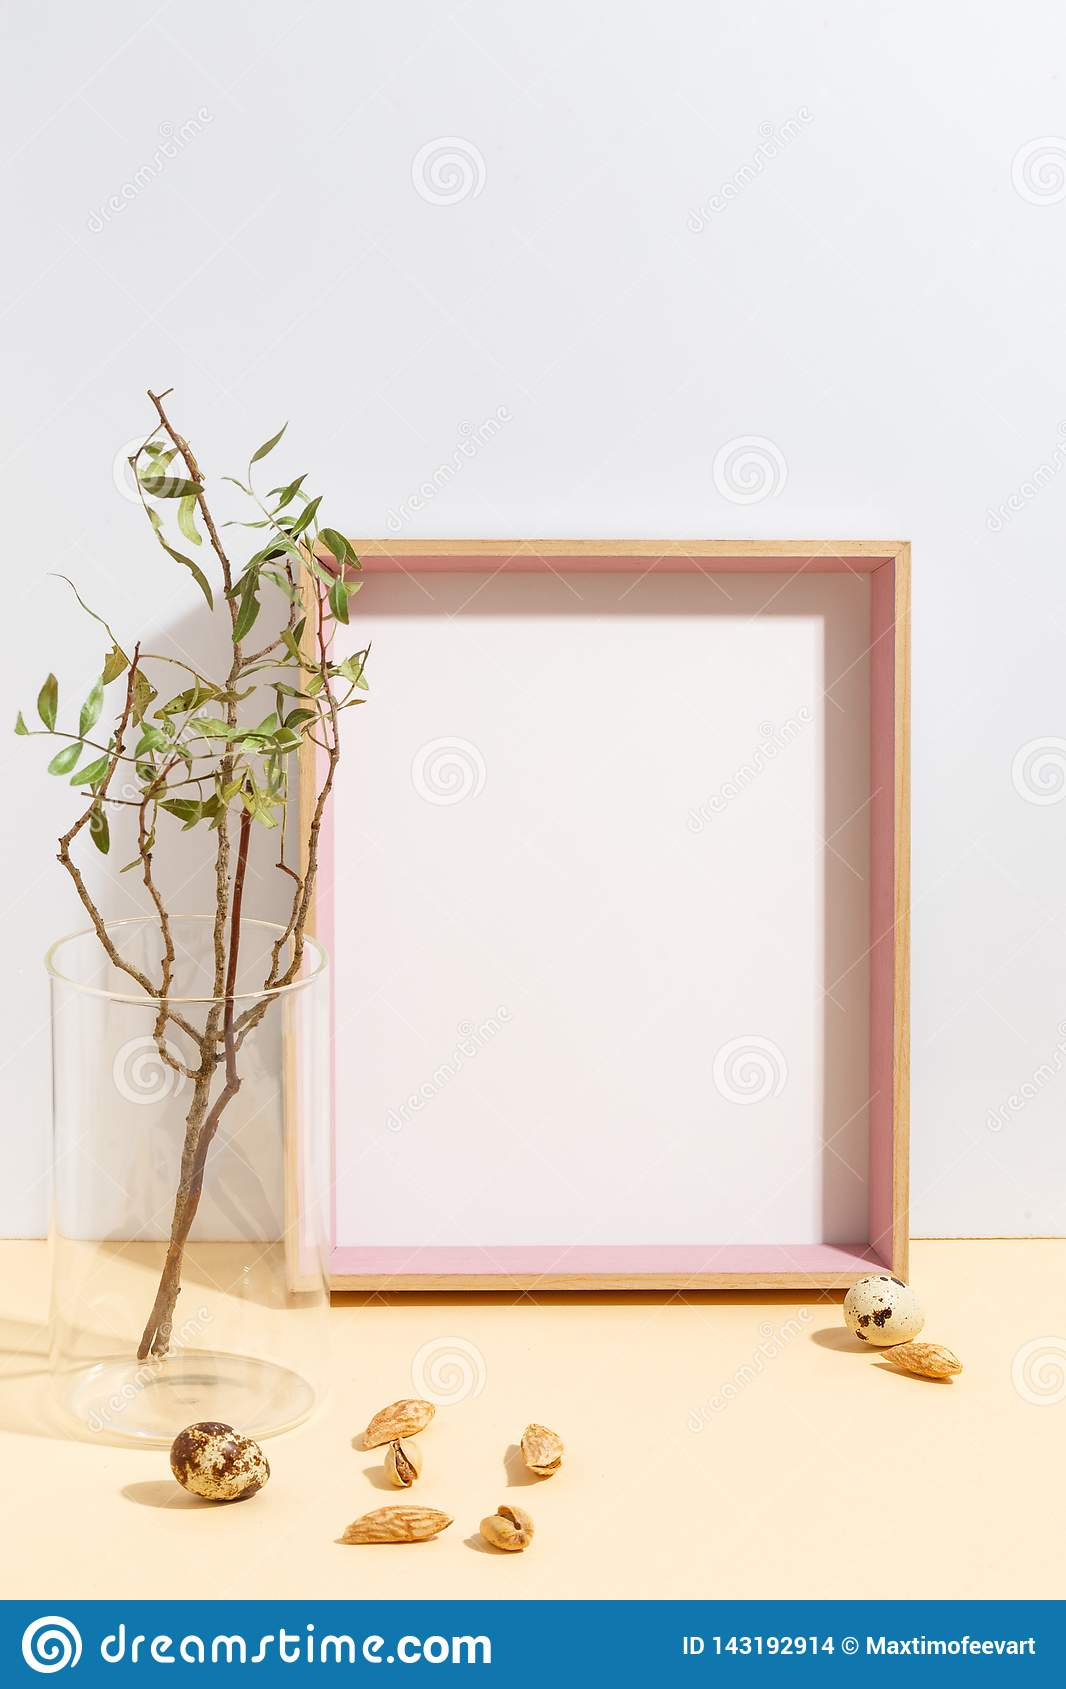 Mock up white frame and branch with green leaves in blue vase on book shelf or desk. Minimalistic concept